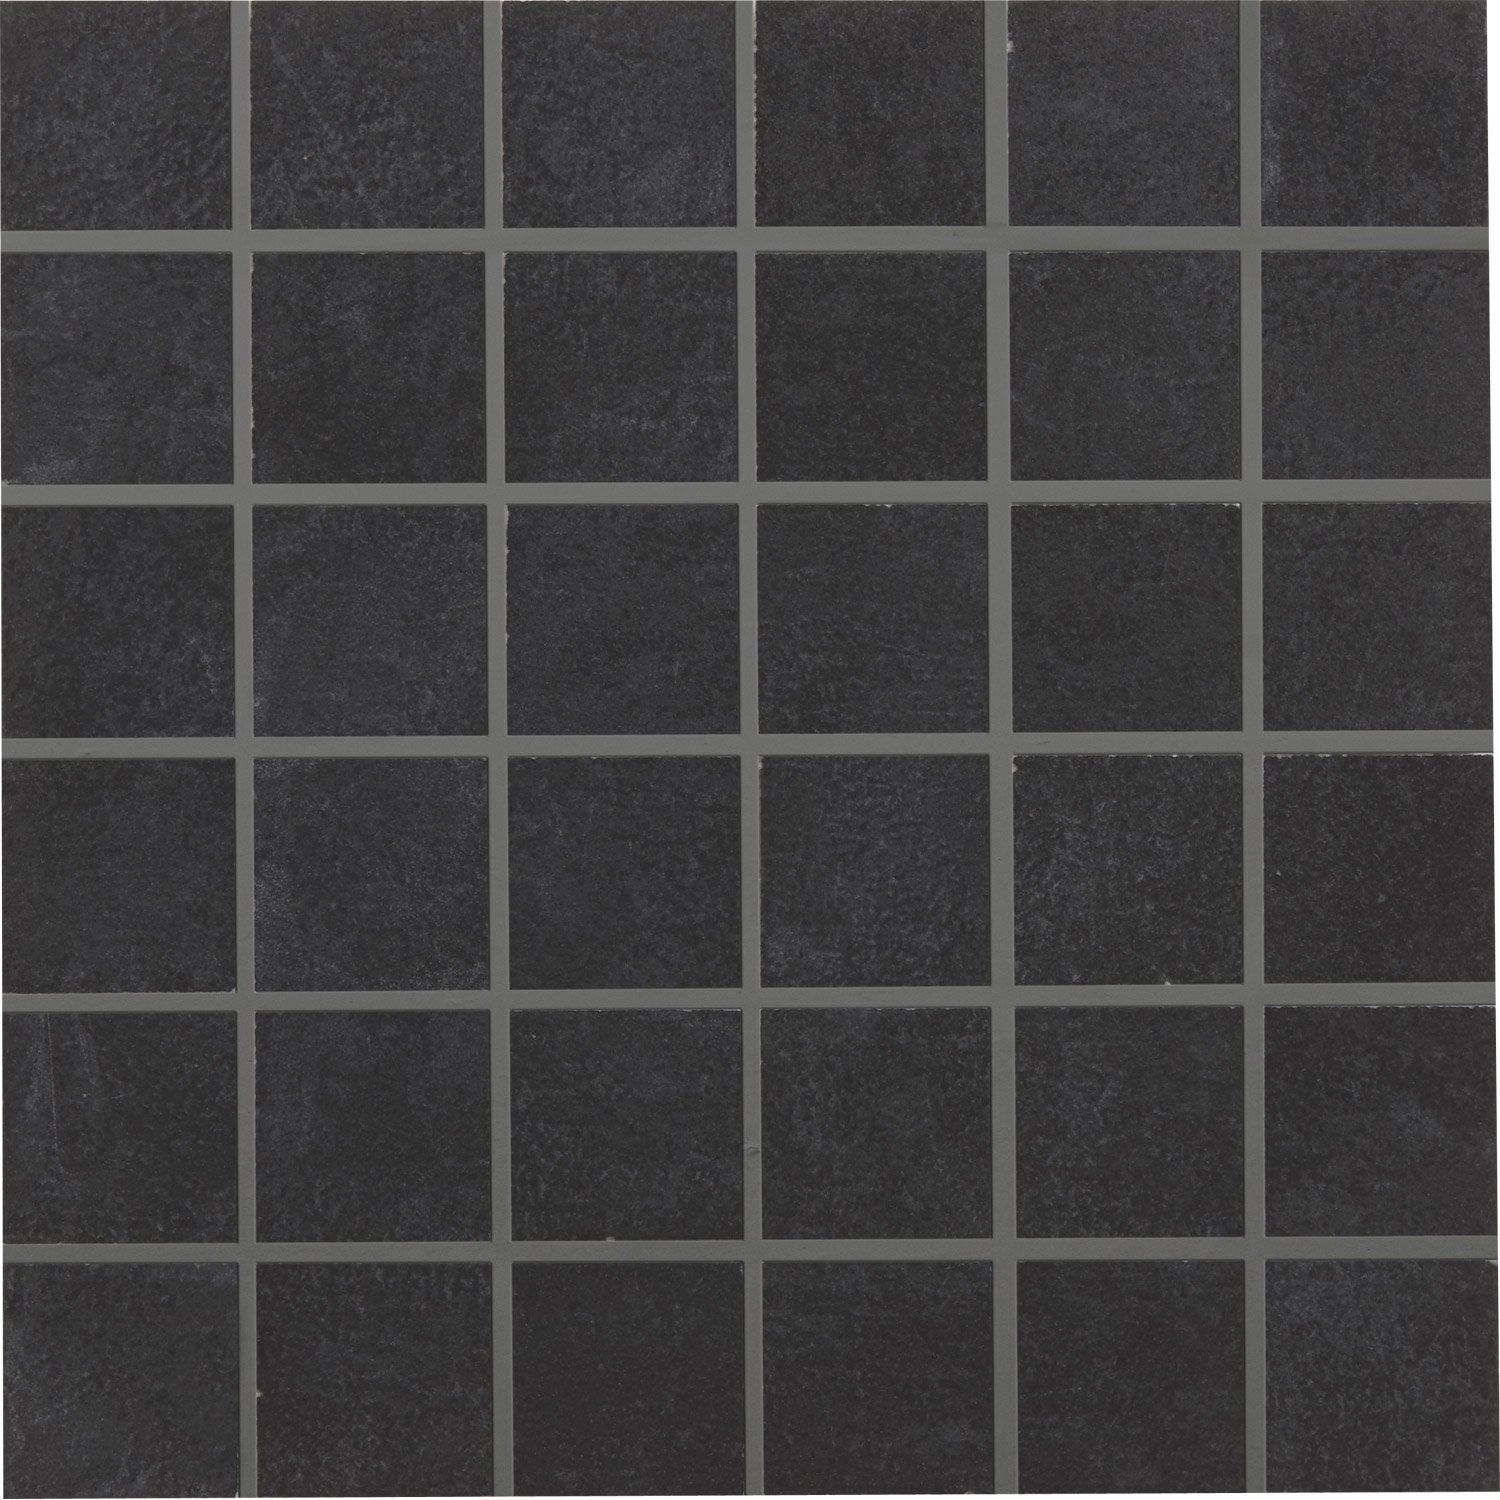 Carrelage 5x5 gris c rame for Carreau salle de bain gris